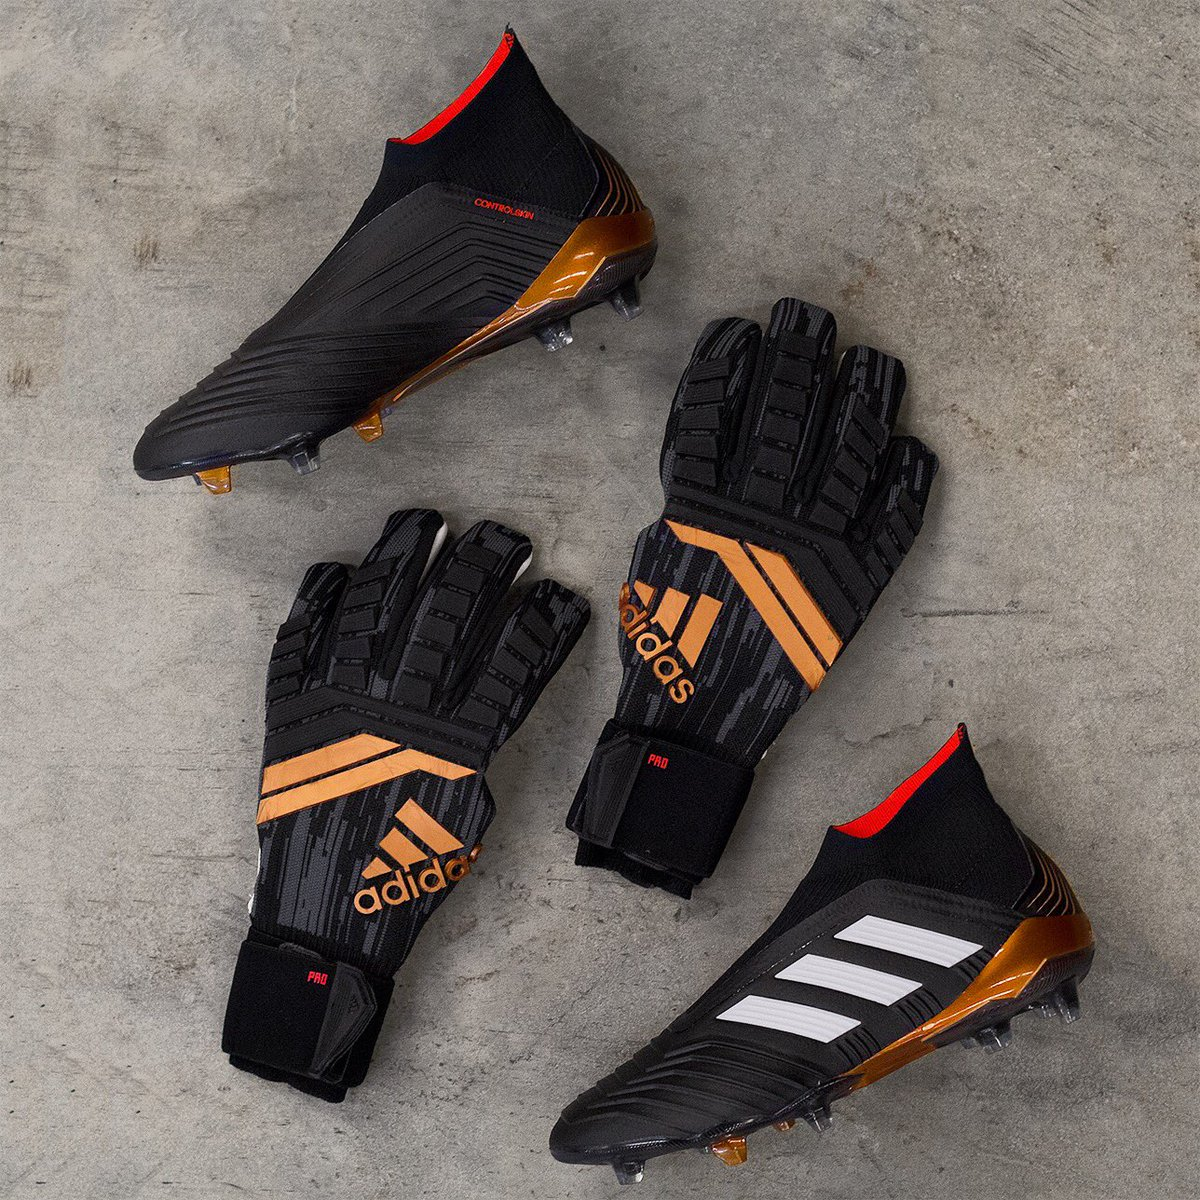 Cheap All-New Adidas Predator 18 Fingersave Pro Goalkeeper ...